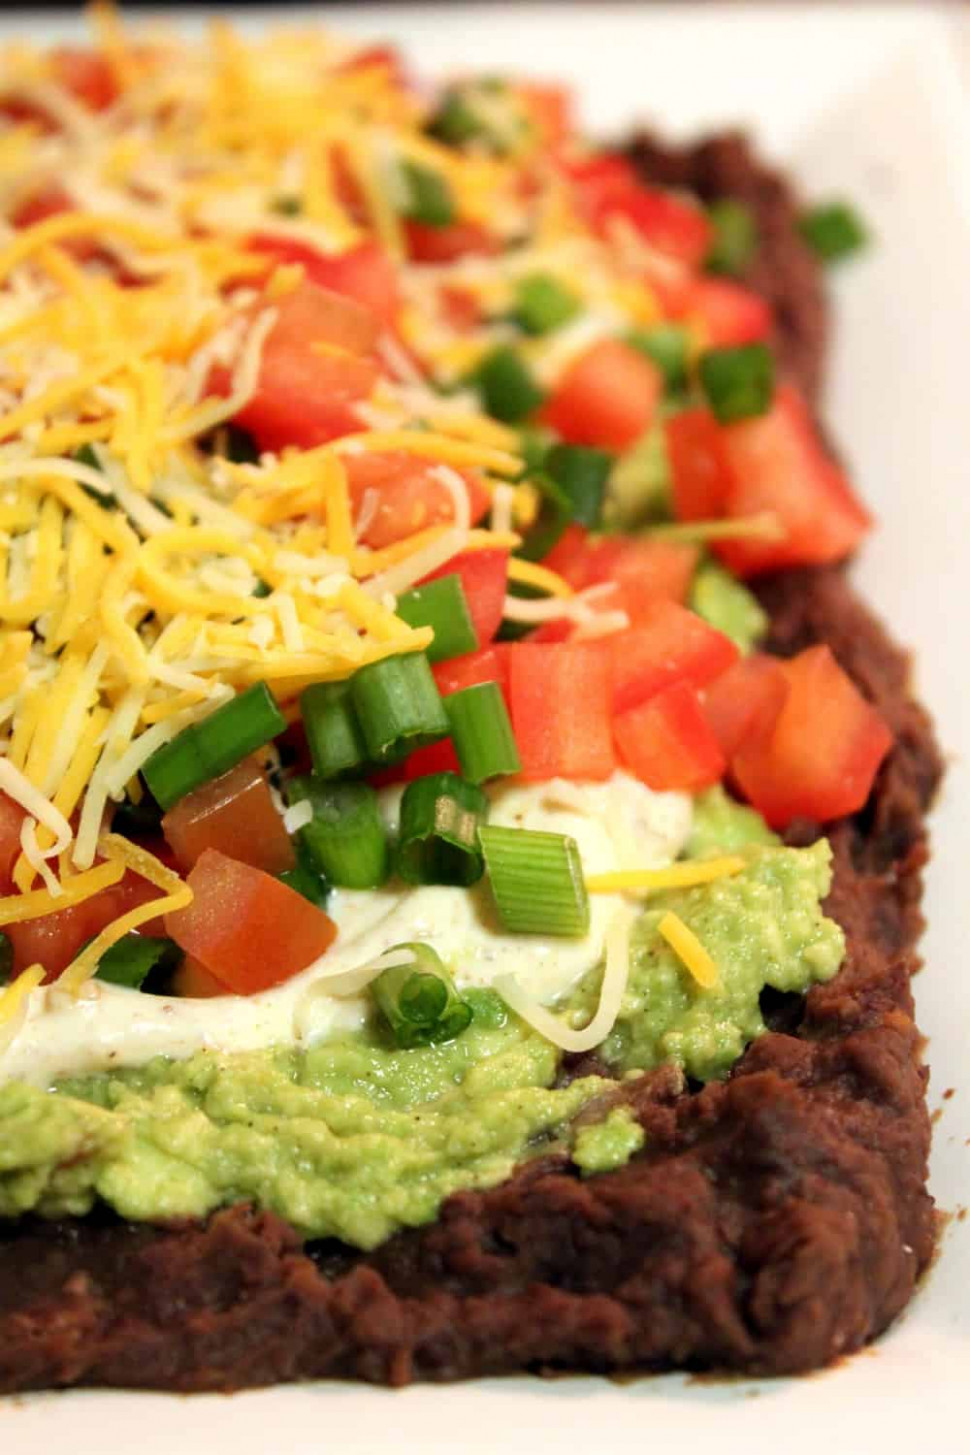 Guilt Free, Healthy 7 Layer Bean Dip - The Picky Eater - Healthy Food Recipes